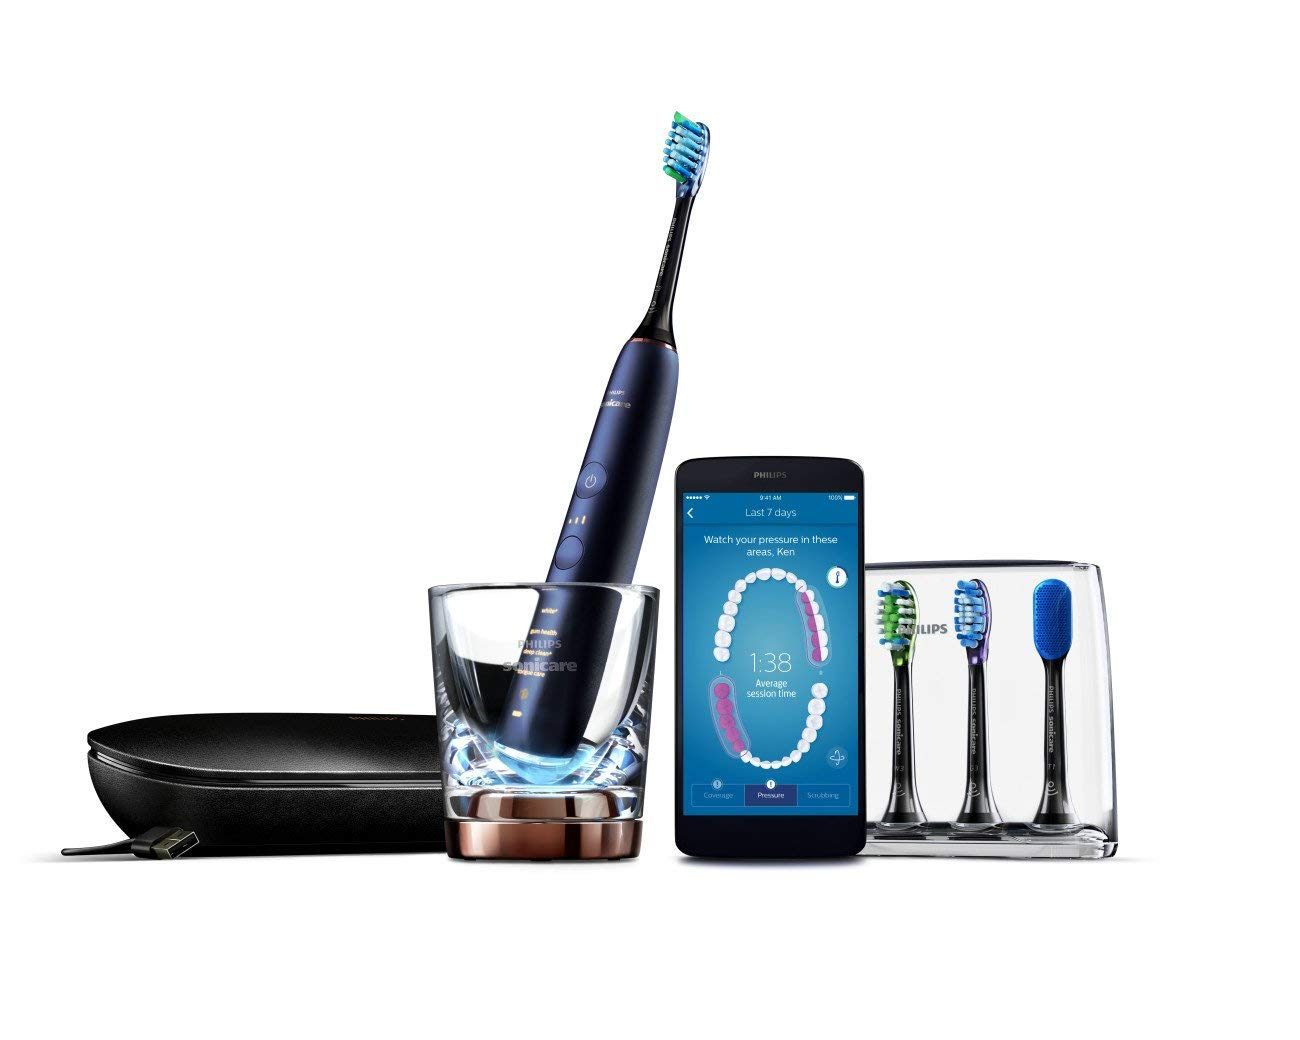 Philips Sonicare DiamondClean Smart 9750 Rechargeable Electric Toothbrush, Lunar Blue HX9954/56 by Philips Sonicare